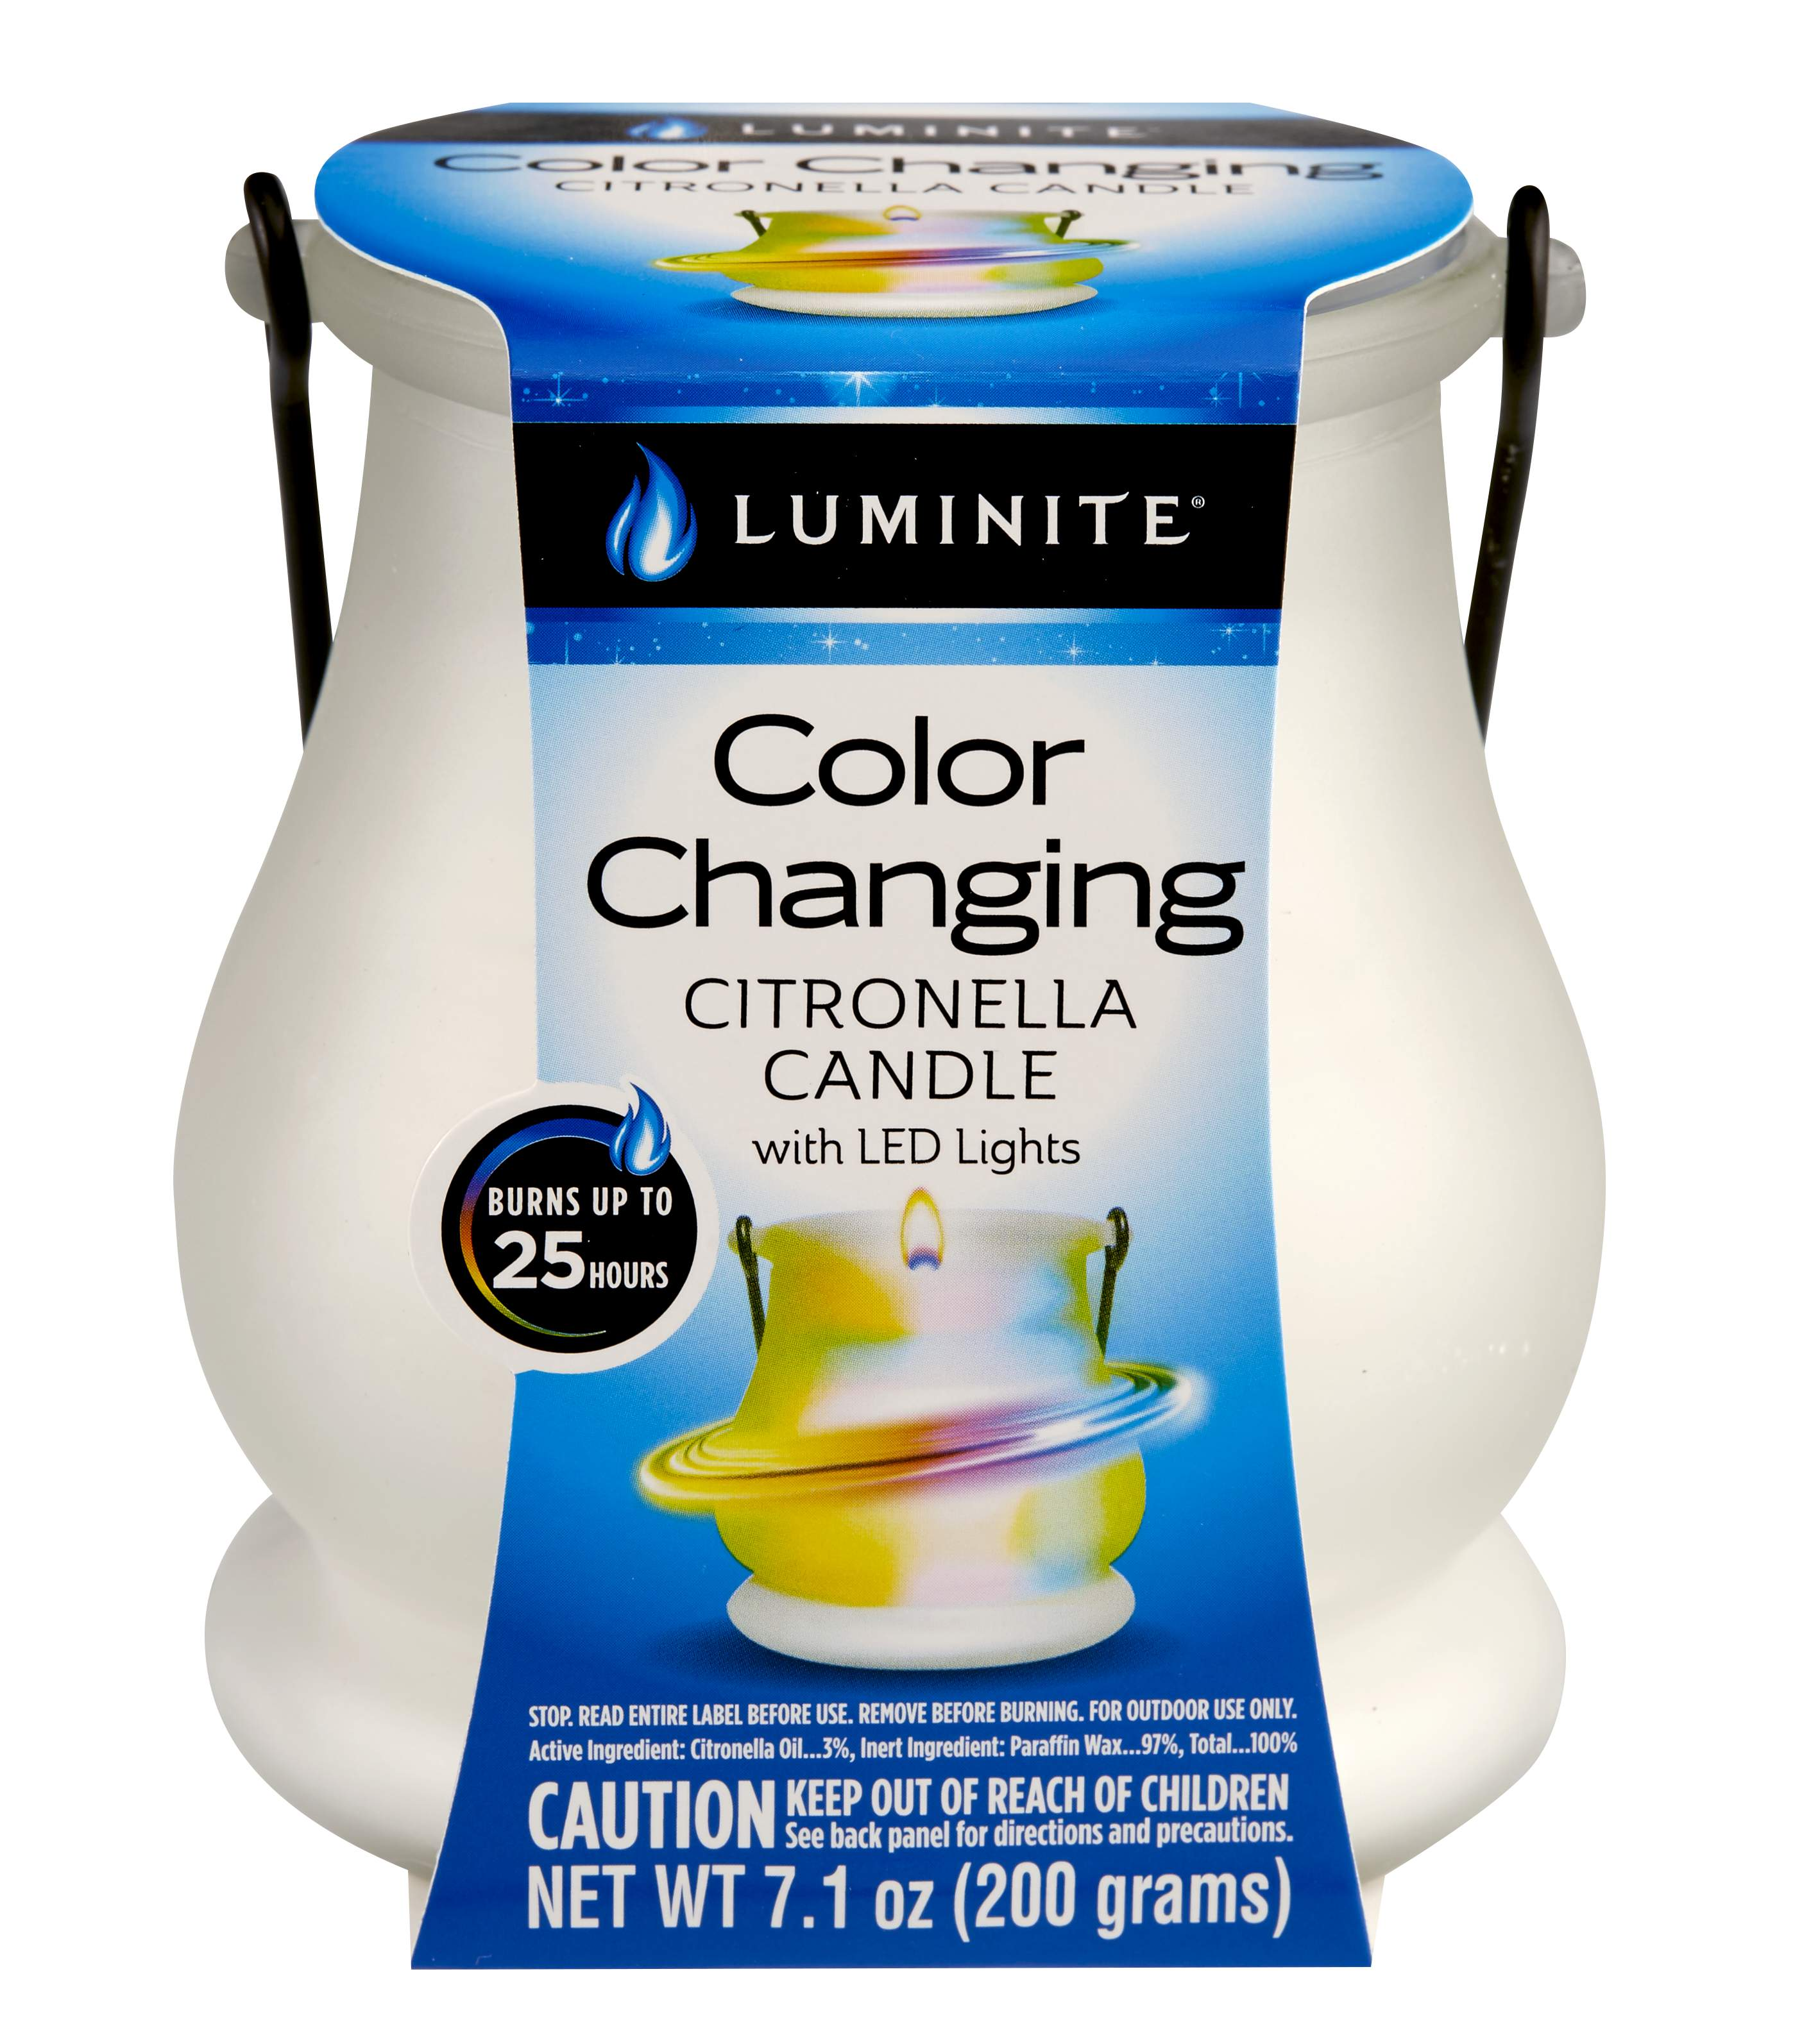 Luminite Color Changing Citronella Candles with LED lights - Lantern